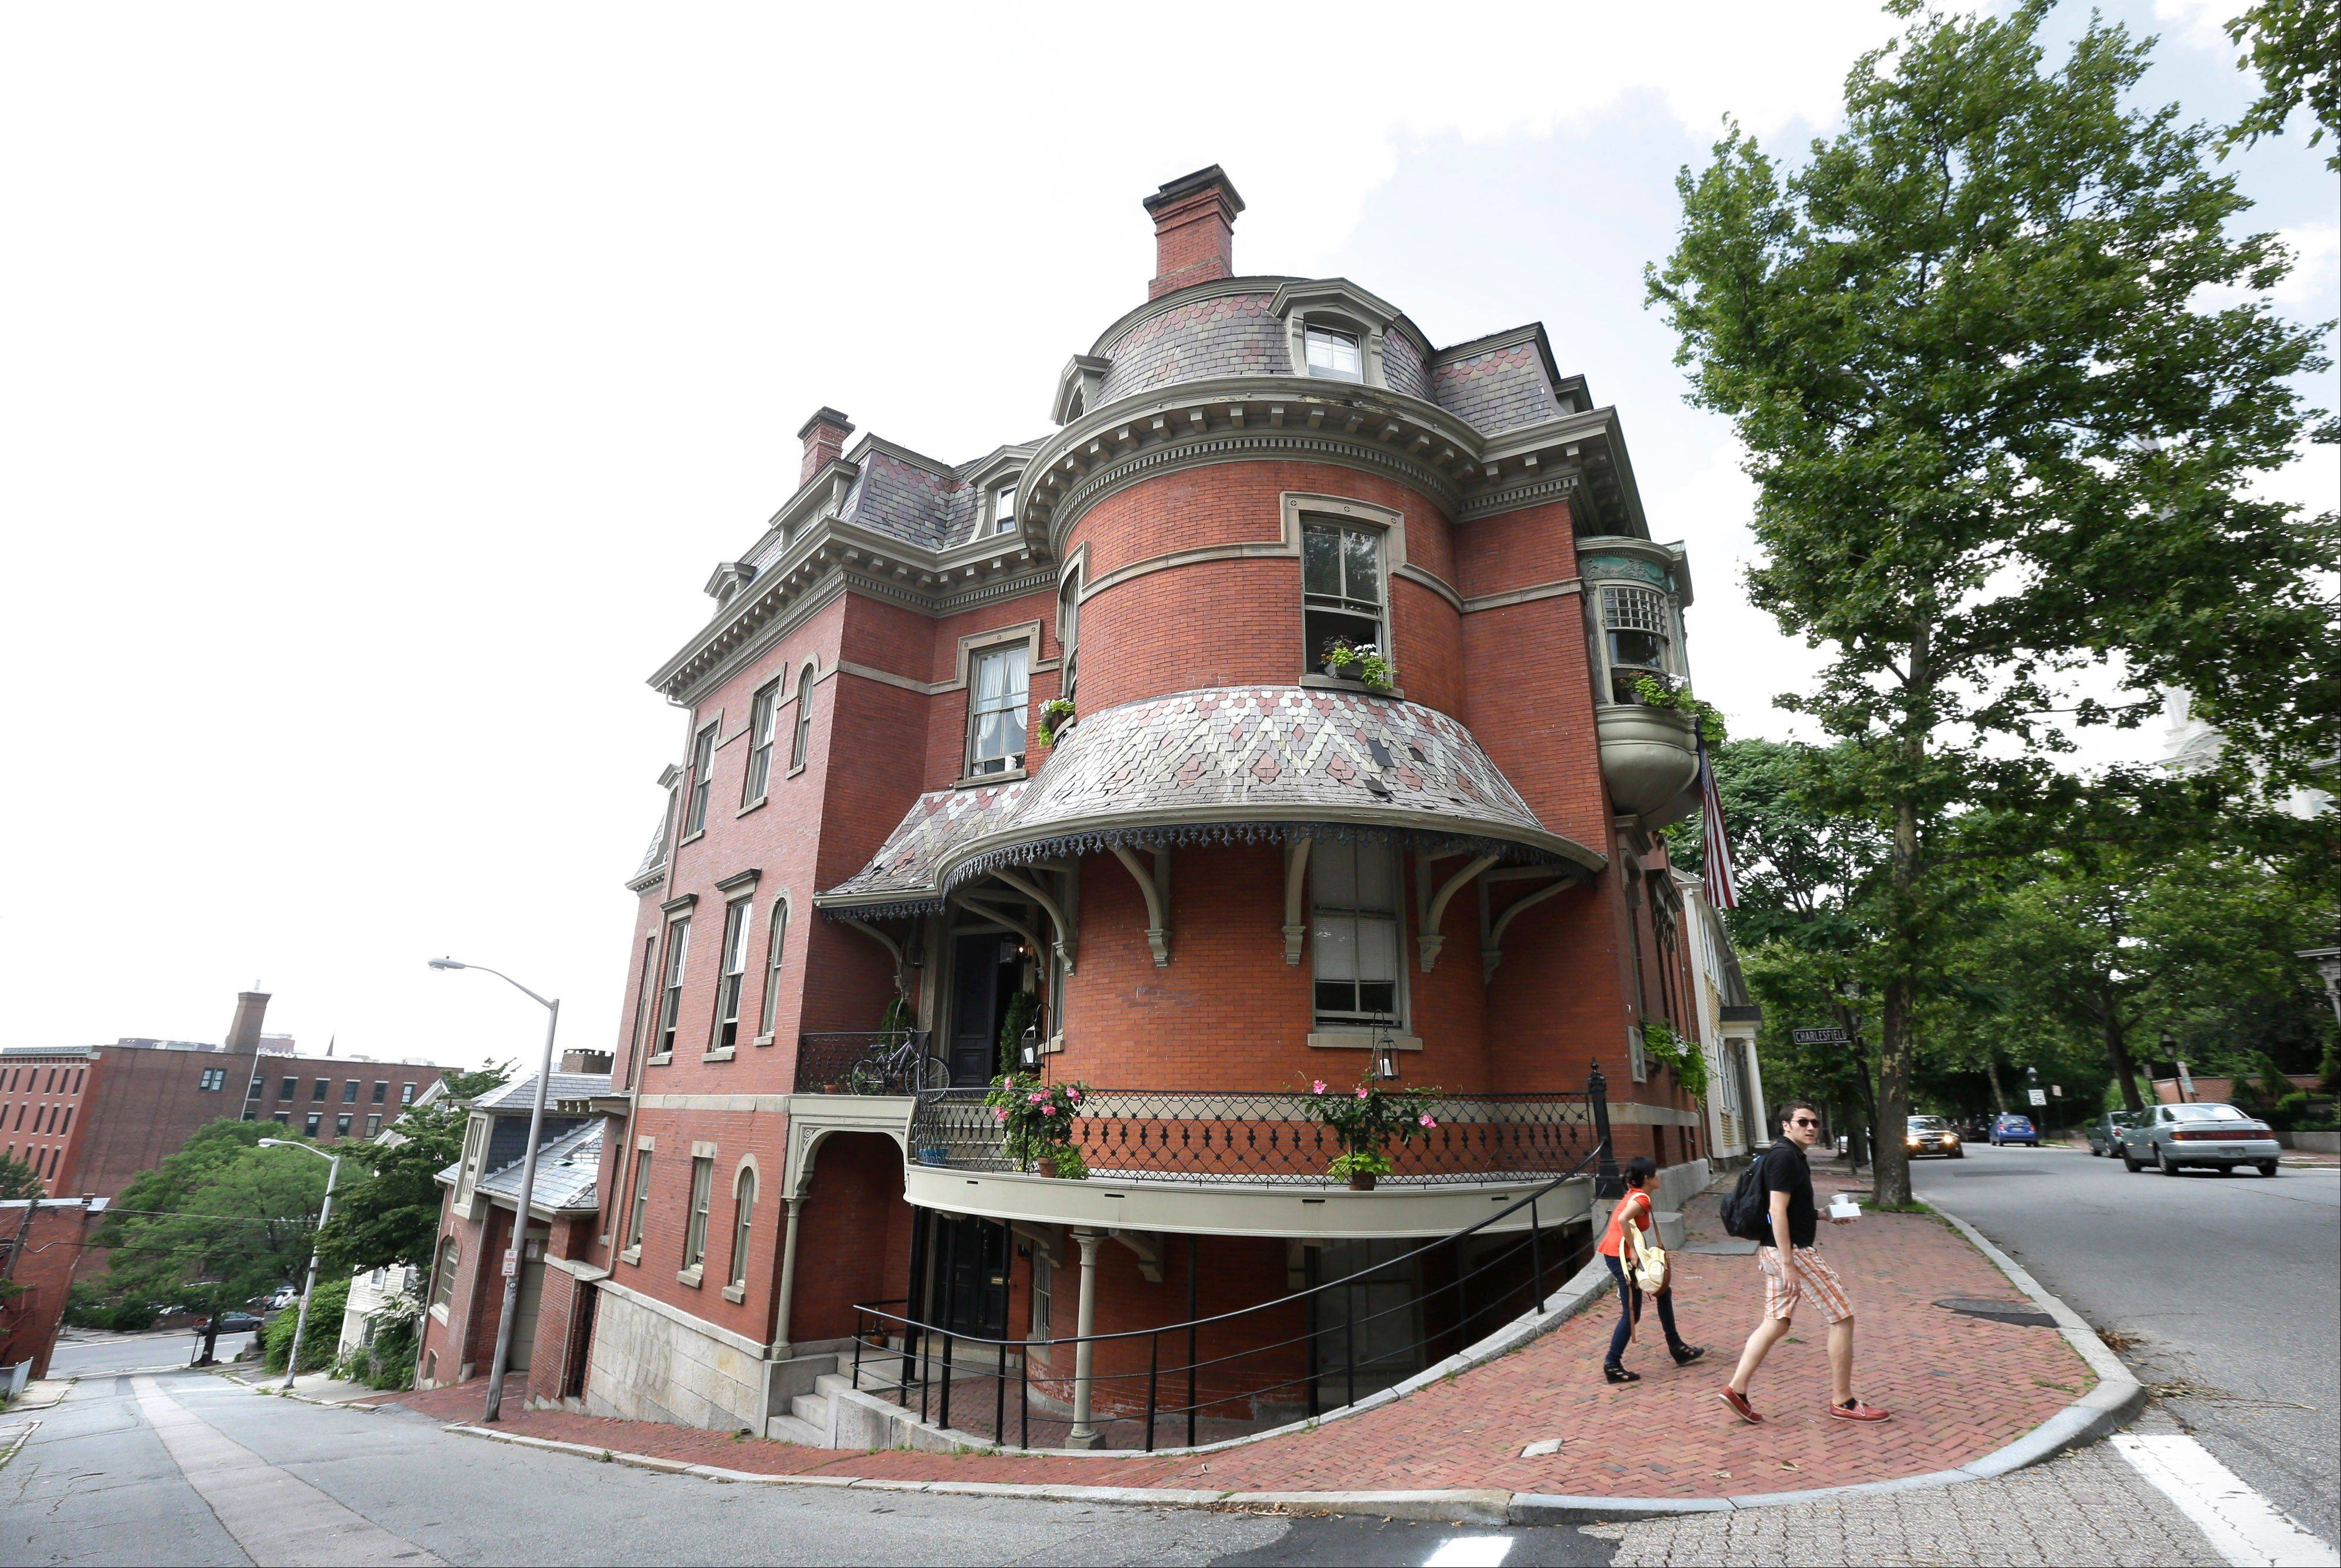 People walk past the Gen. Ambrose Burnside House at the corner of Benefit and Planet streets, in Providence. A walk down Benefit Street is one of a number of free attractions in Rhode Island.